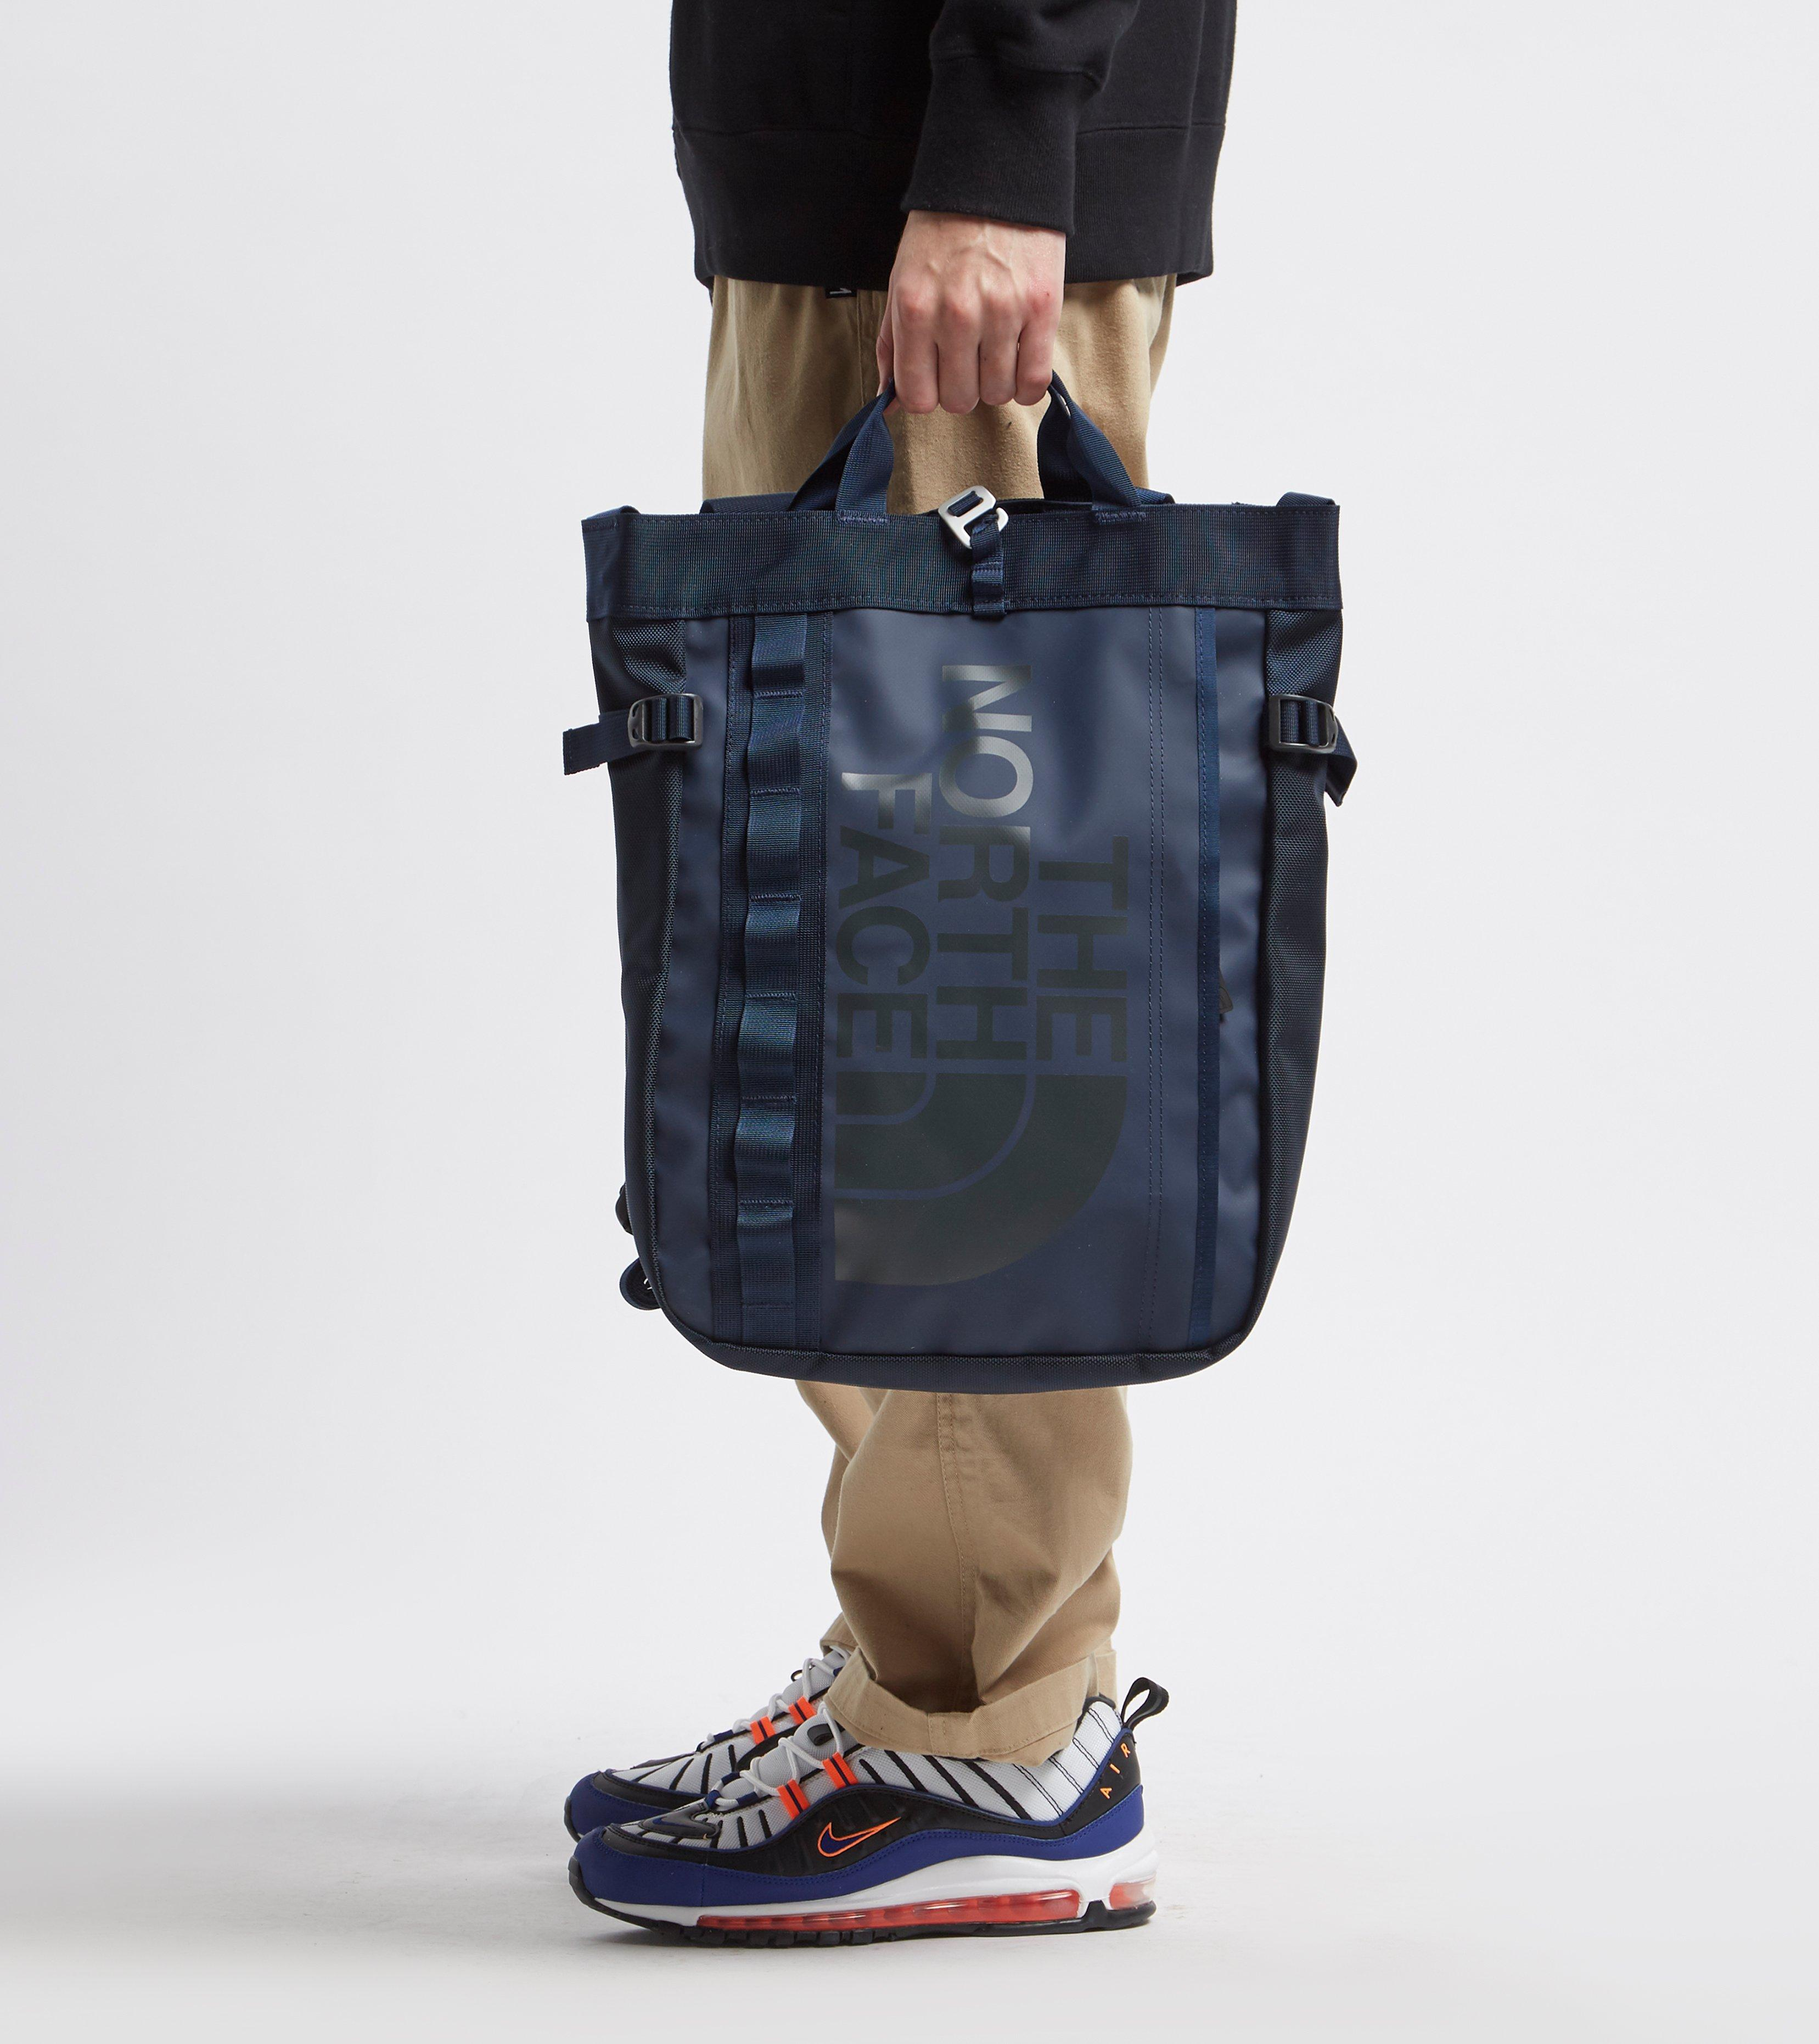 the north face basecamp fuse box tote bag size? Waterproof North Face Hot Shot the north face basecamp fuse box tote bag